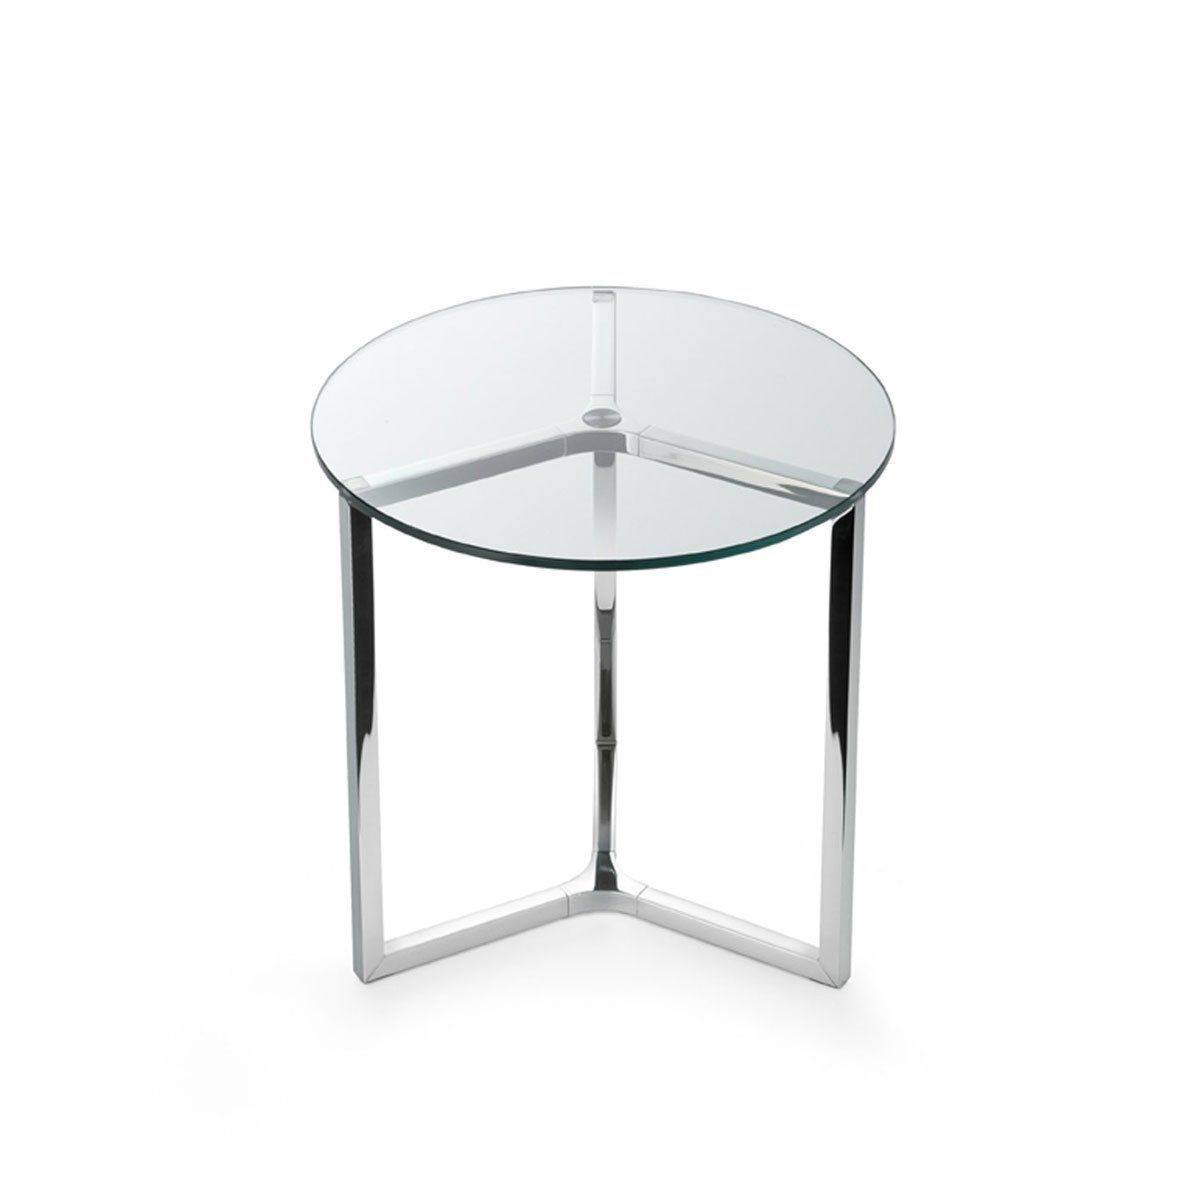 Raj 2 Glass And Metal Side Table By Gallotti amp Radice